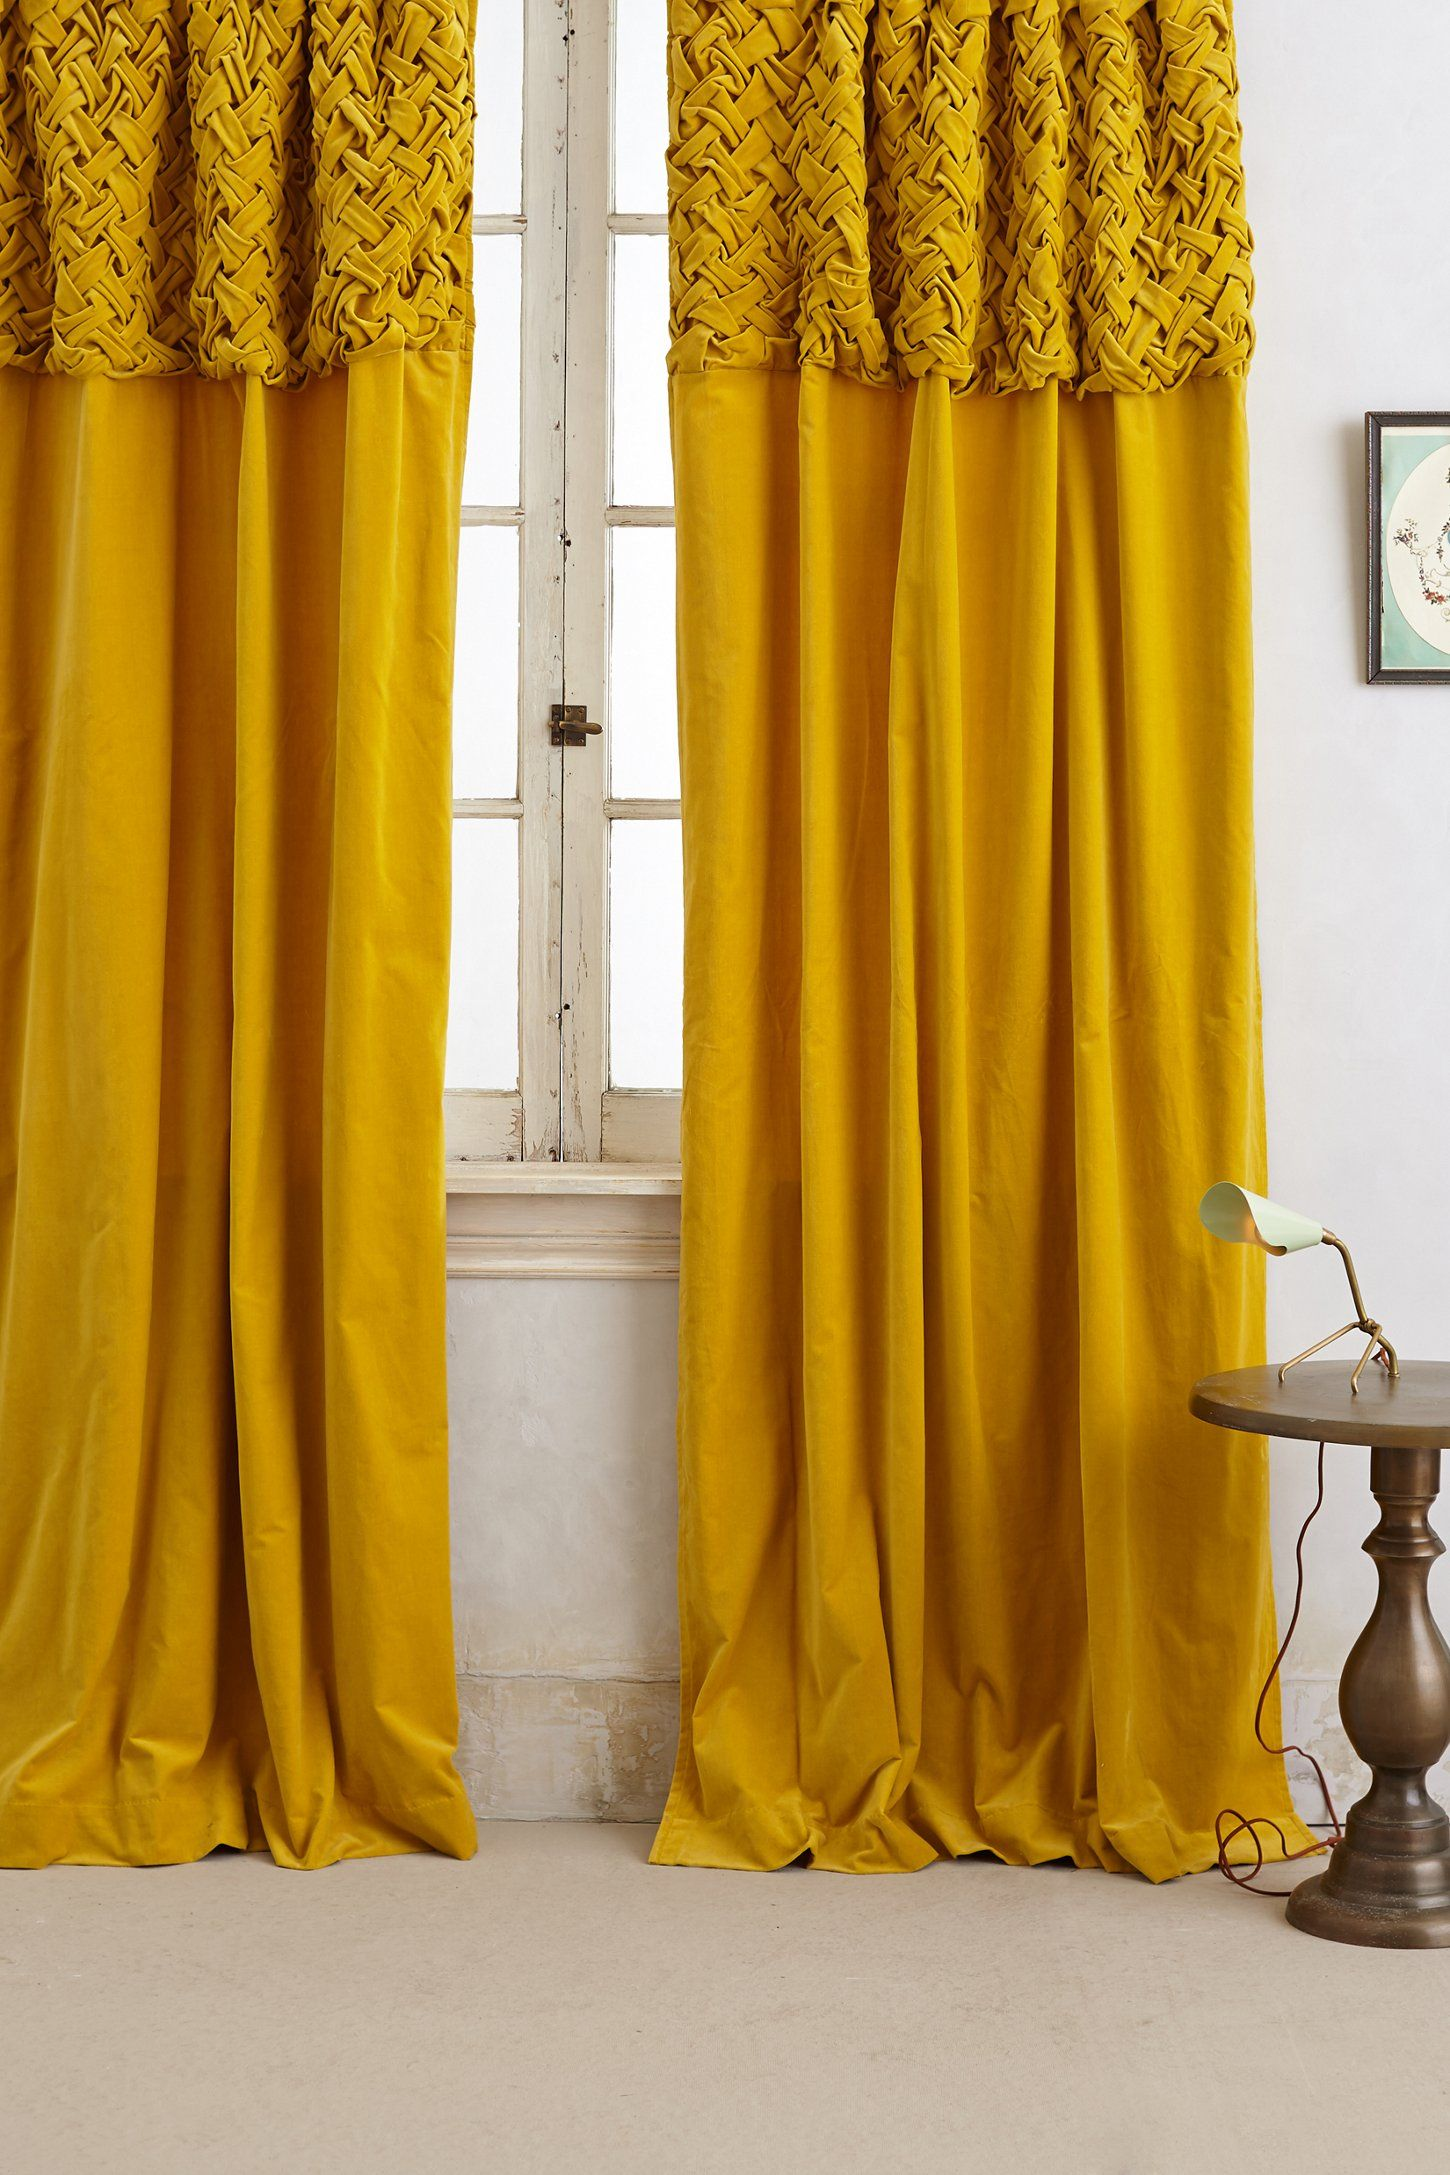 incredible curtainget yellow size of excellent target curtainstarget pictures shower full concept grey drapes best gray window curtain curtains marvelous